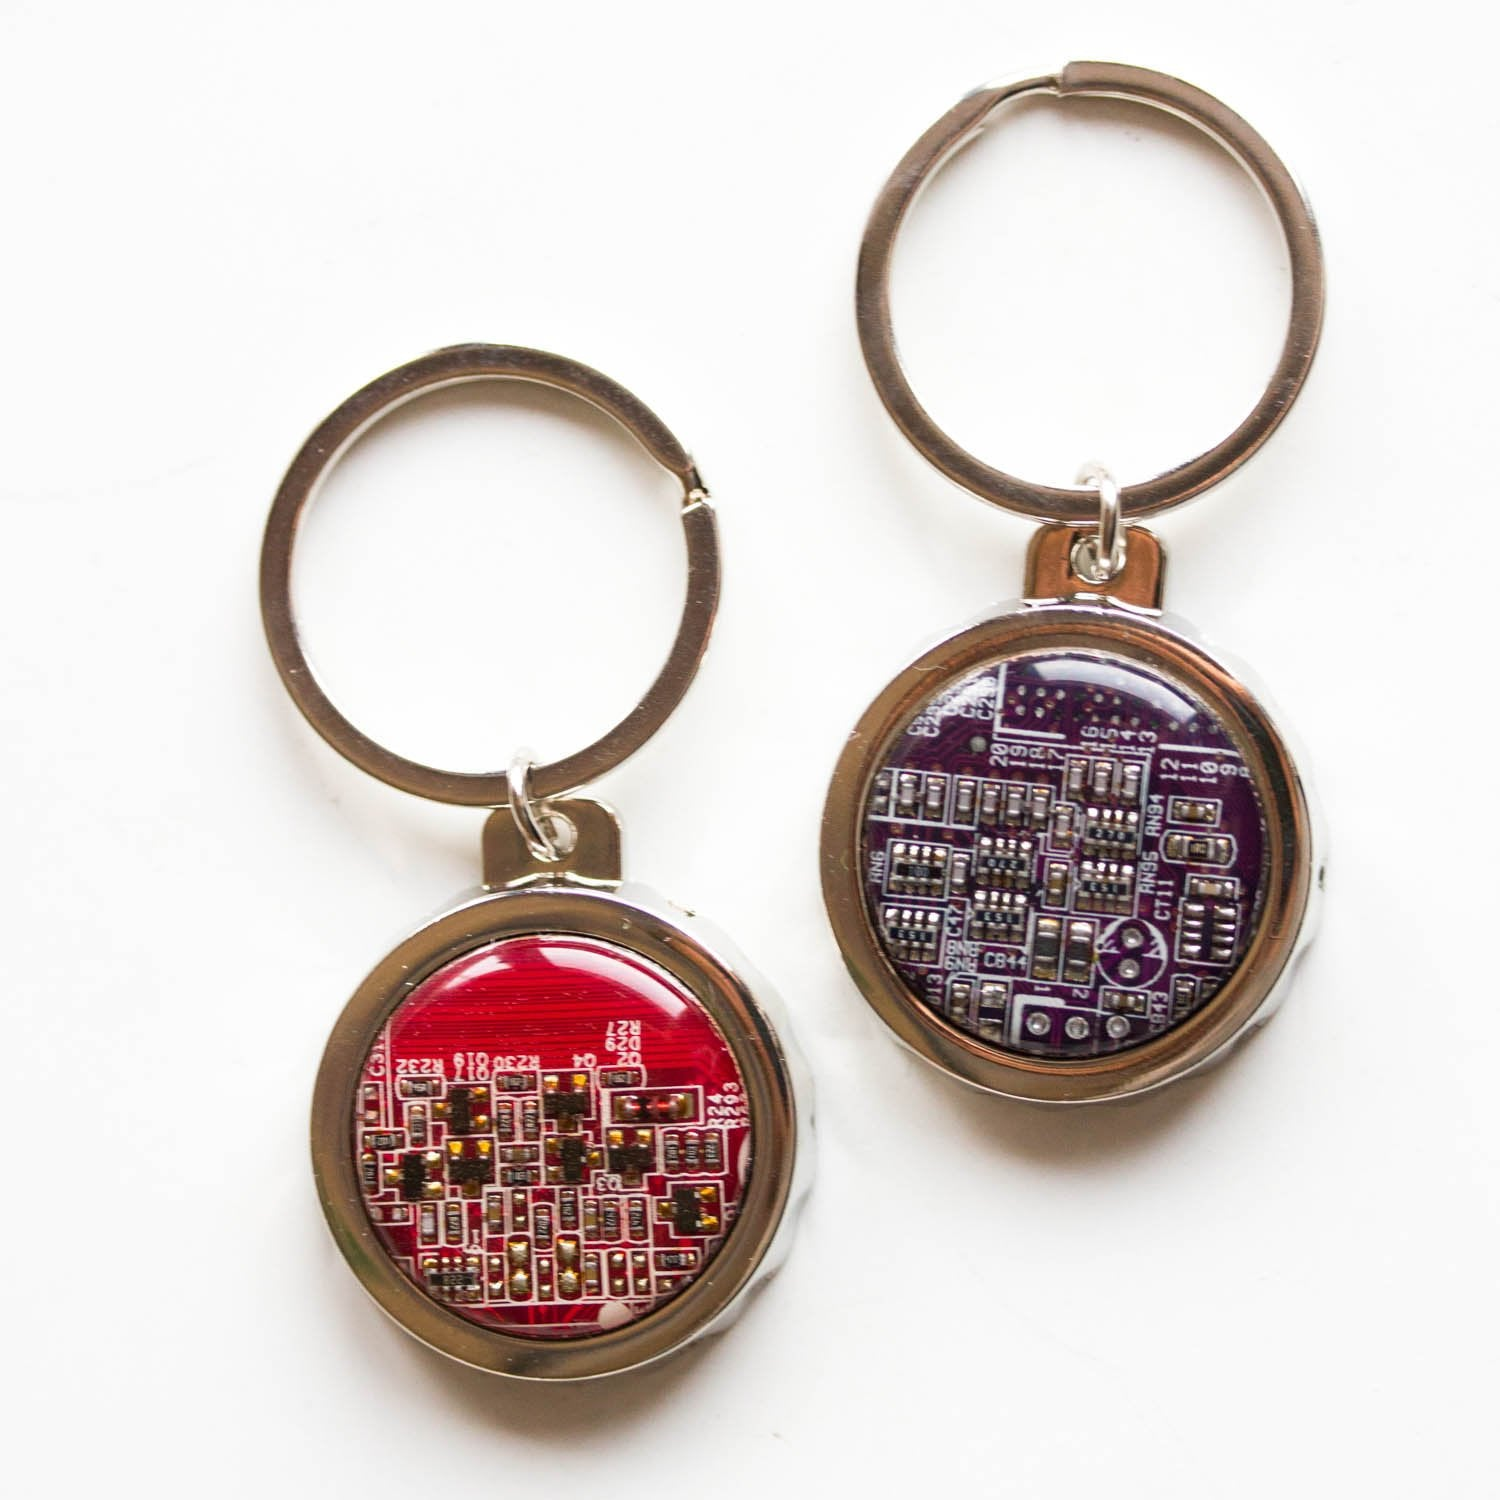 Bottle opener keychain with a round real circuit board piece